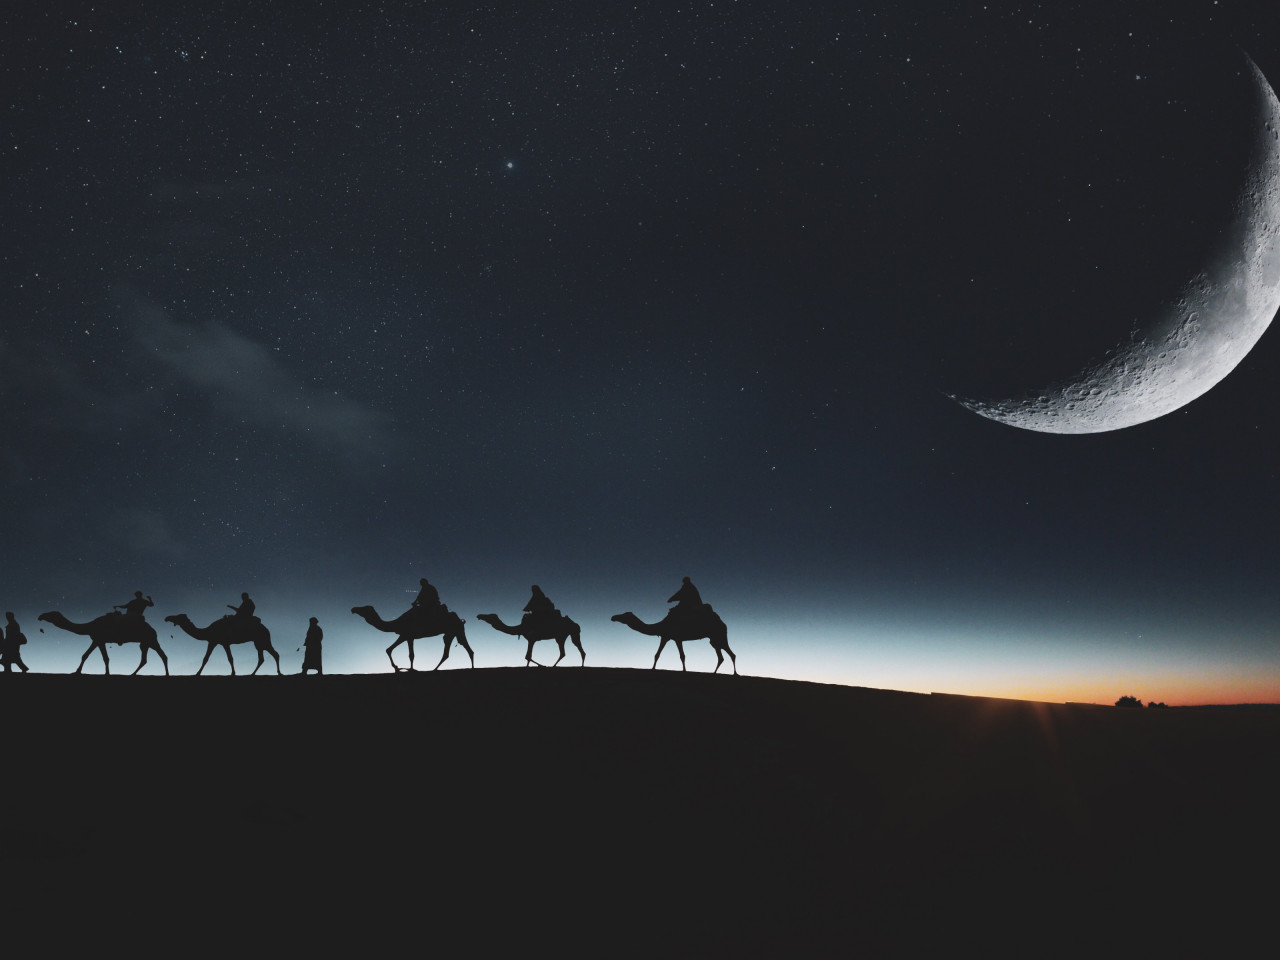 Traveling through desert on camels wallpaper 1280x960